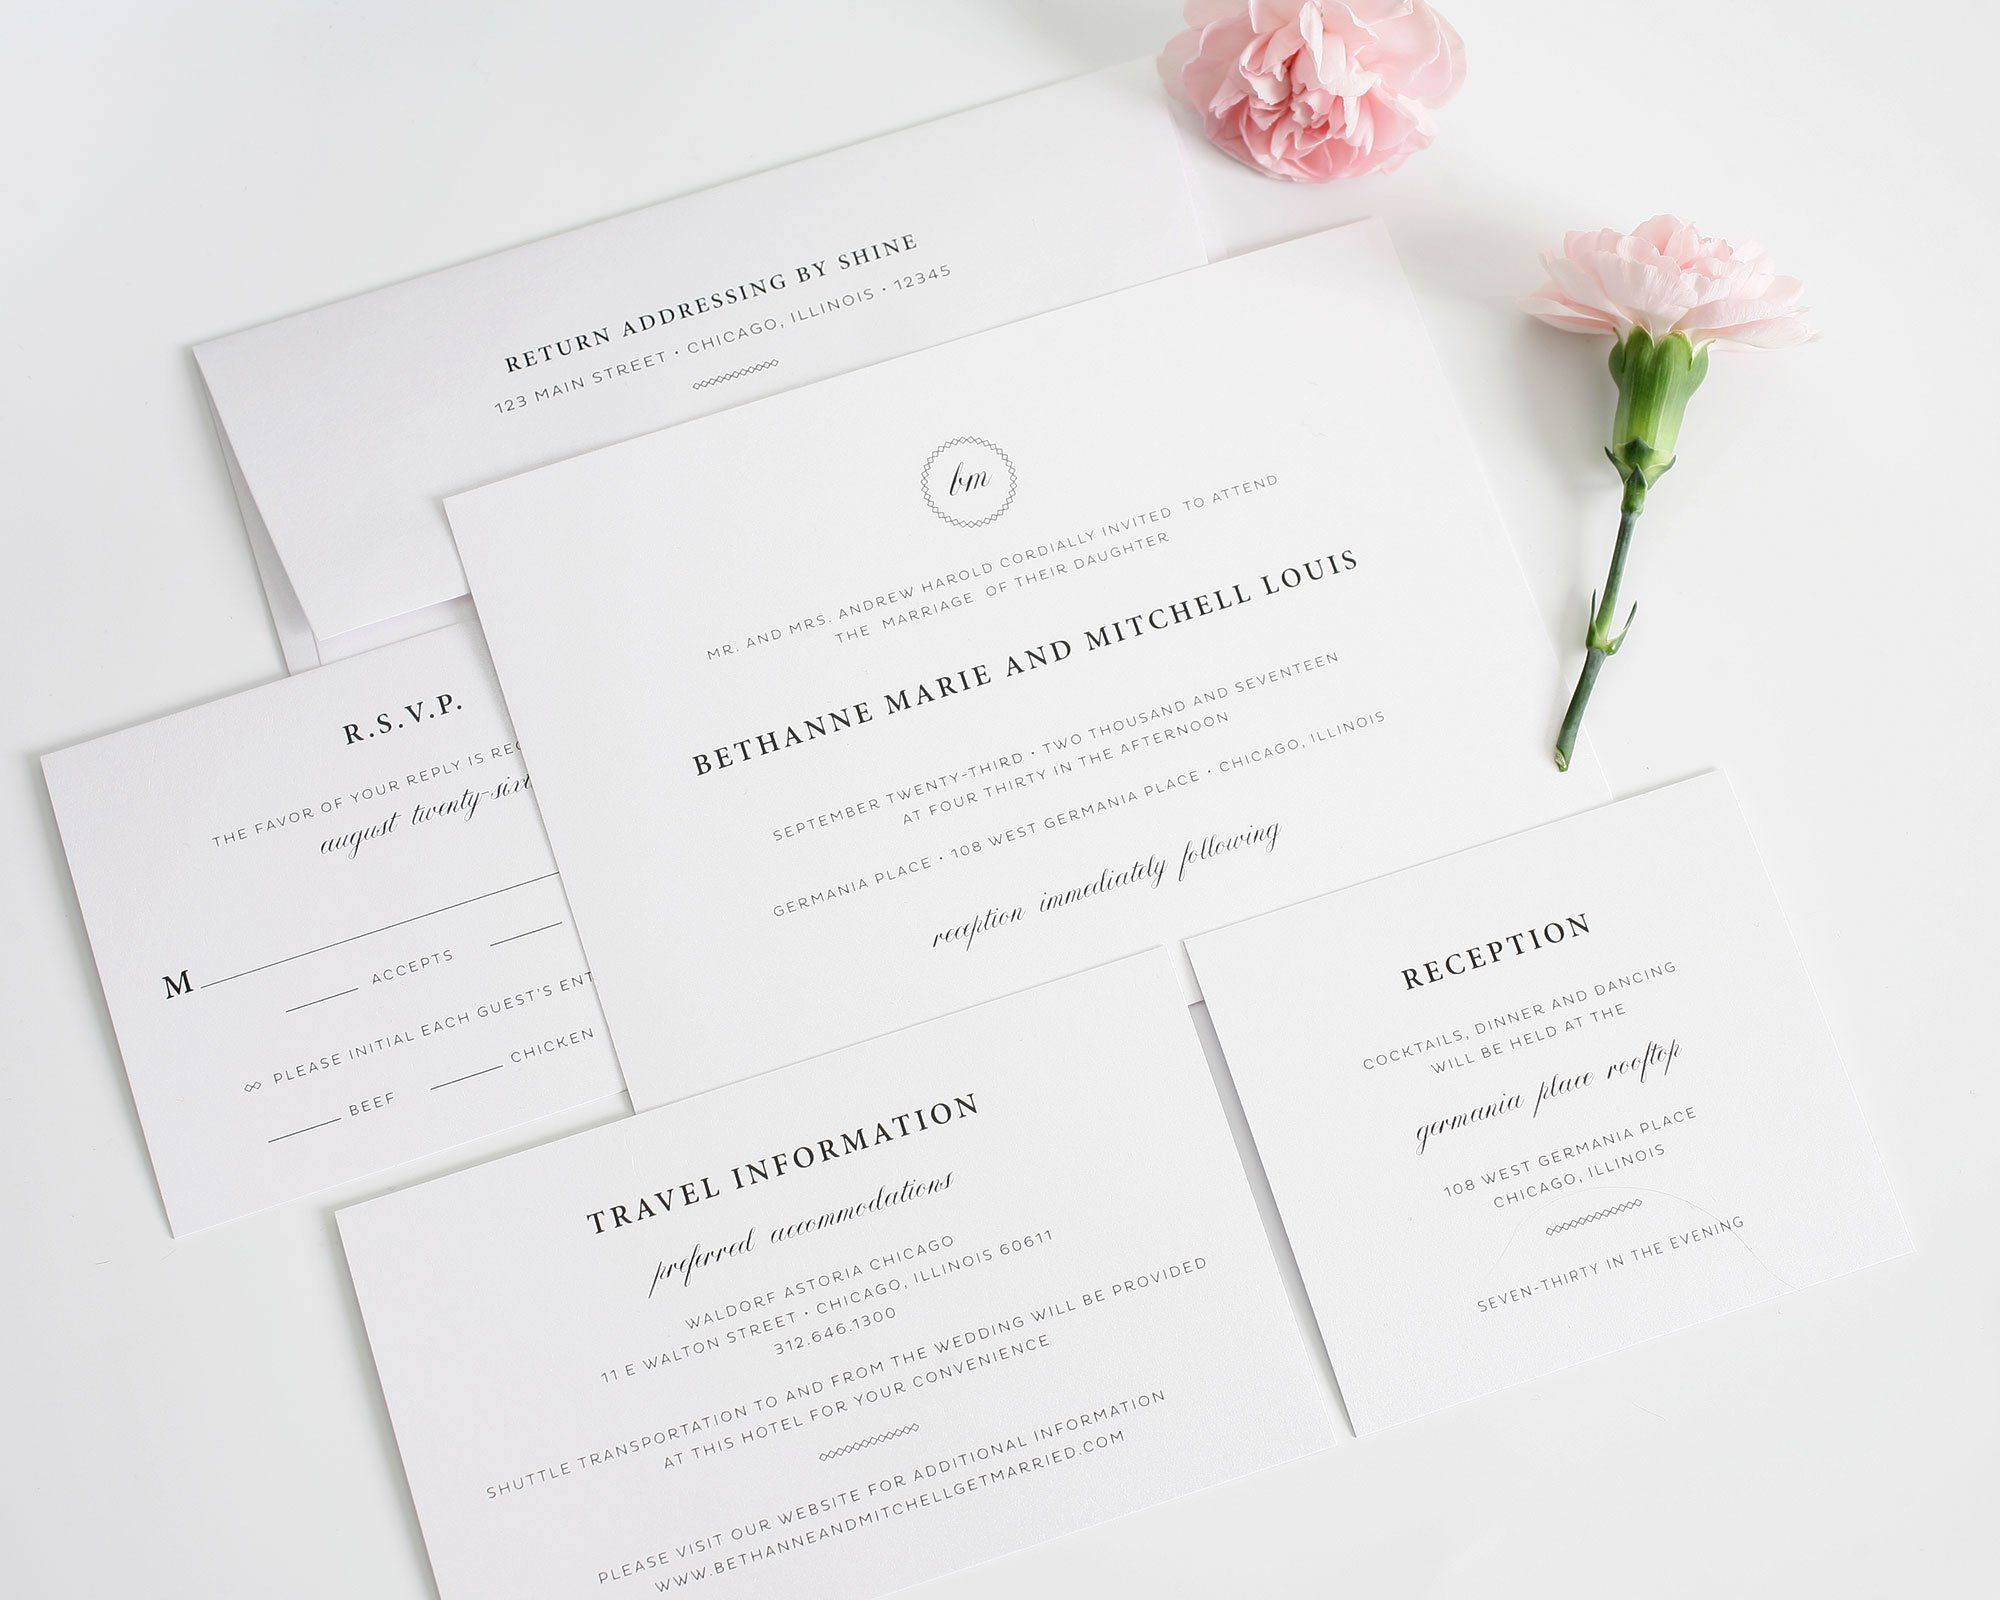 Elegant Monogram Wedding Invitations: Elegant Wedding Invitations With A Monogram